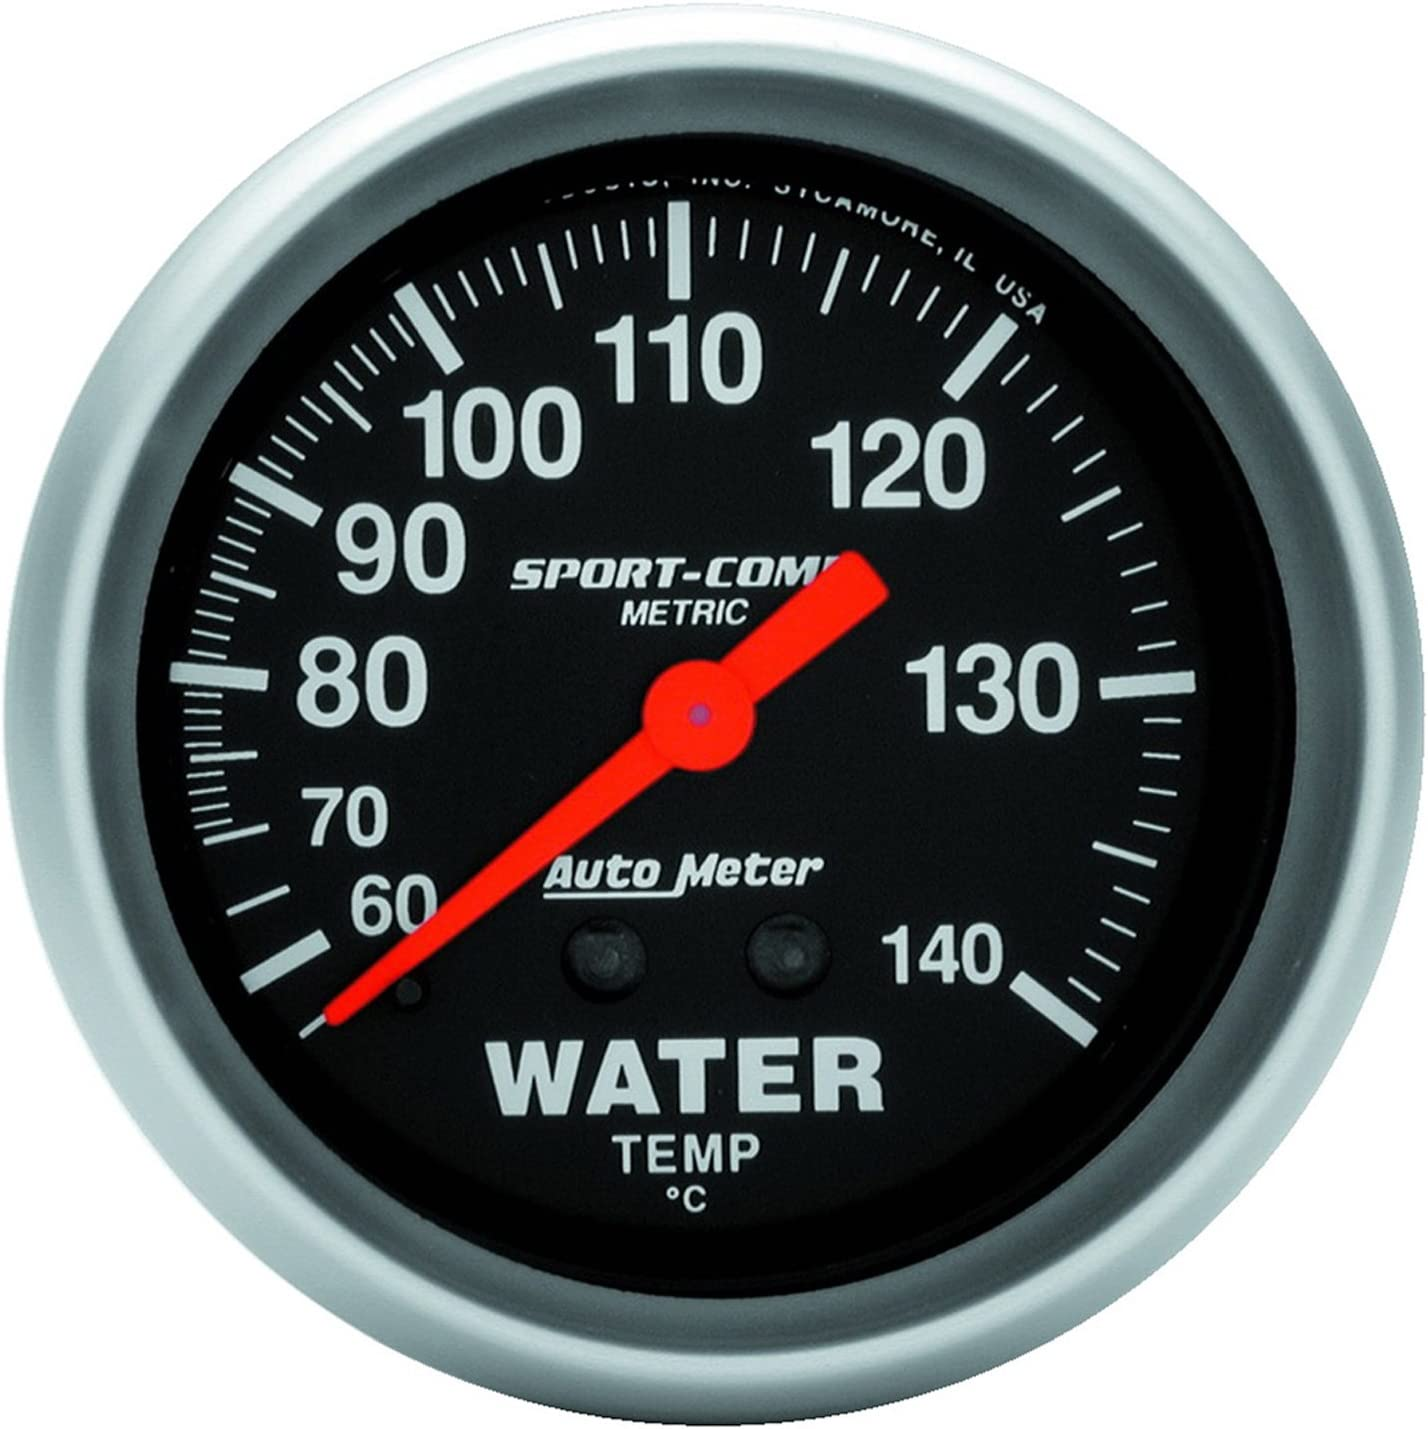 Auto Meter 3431-M Sport-Comp Temperature Metric Mechanical Sale Max 78% OFF Special Price Water